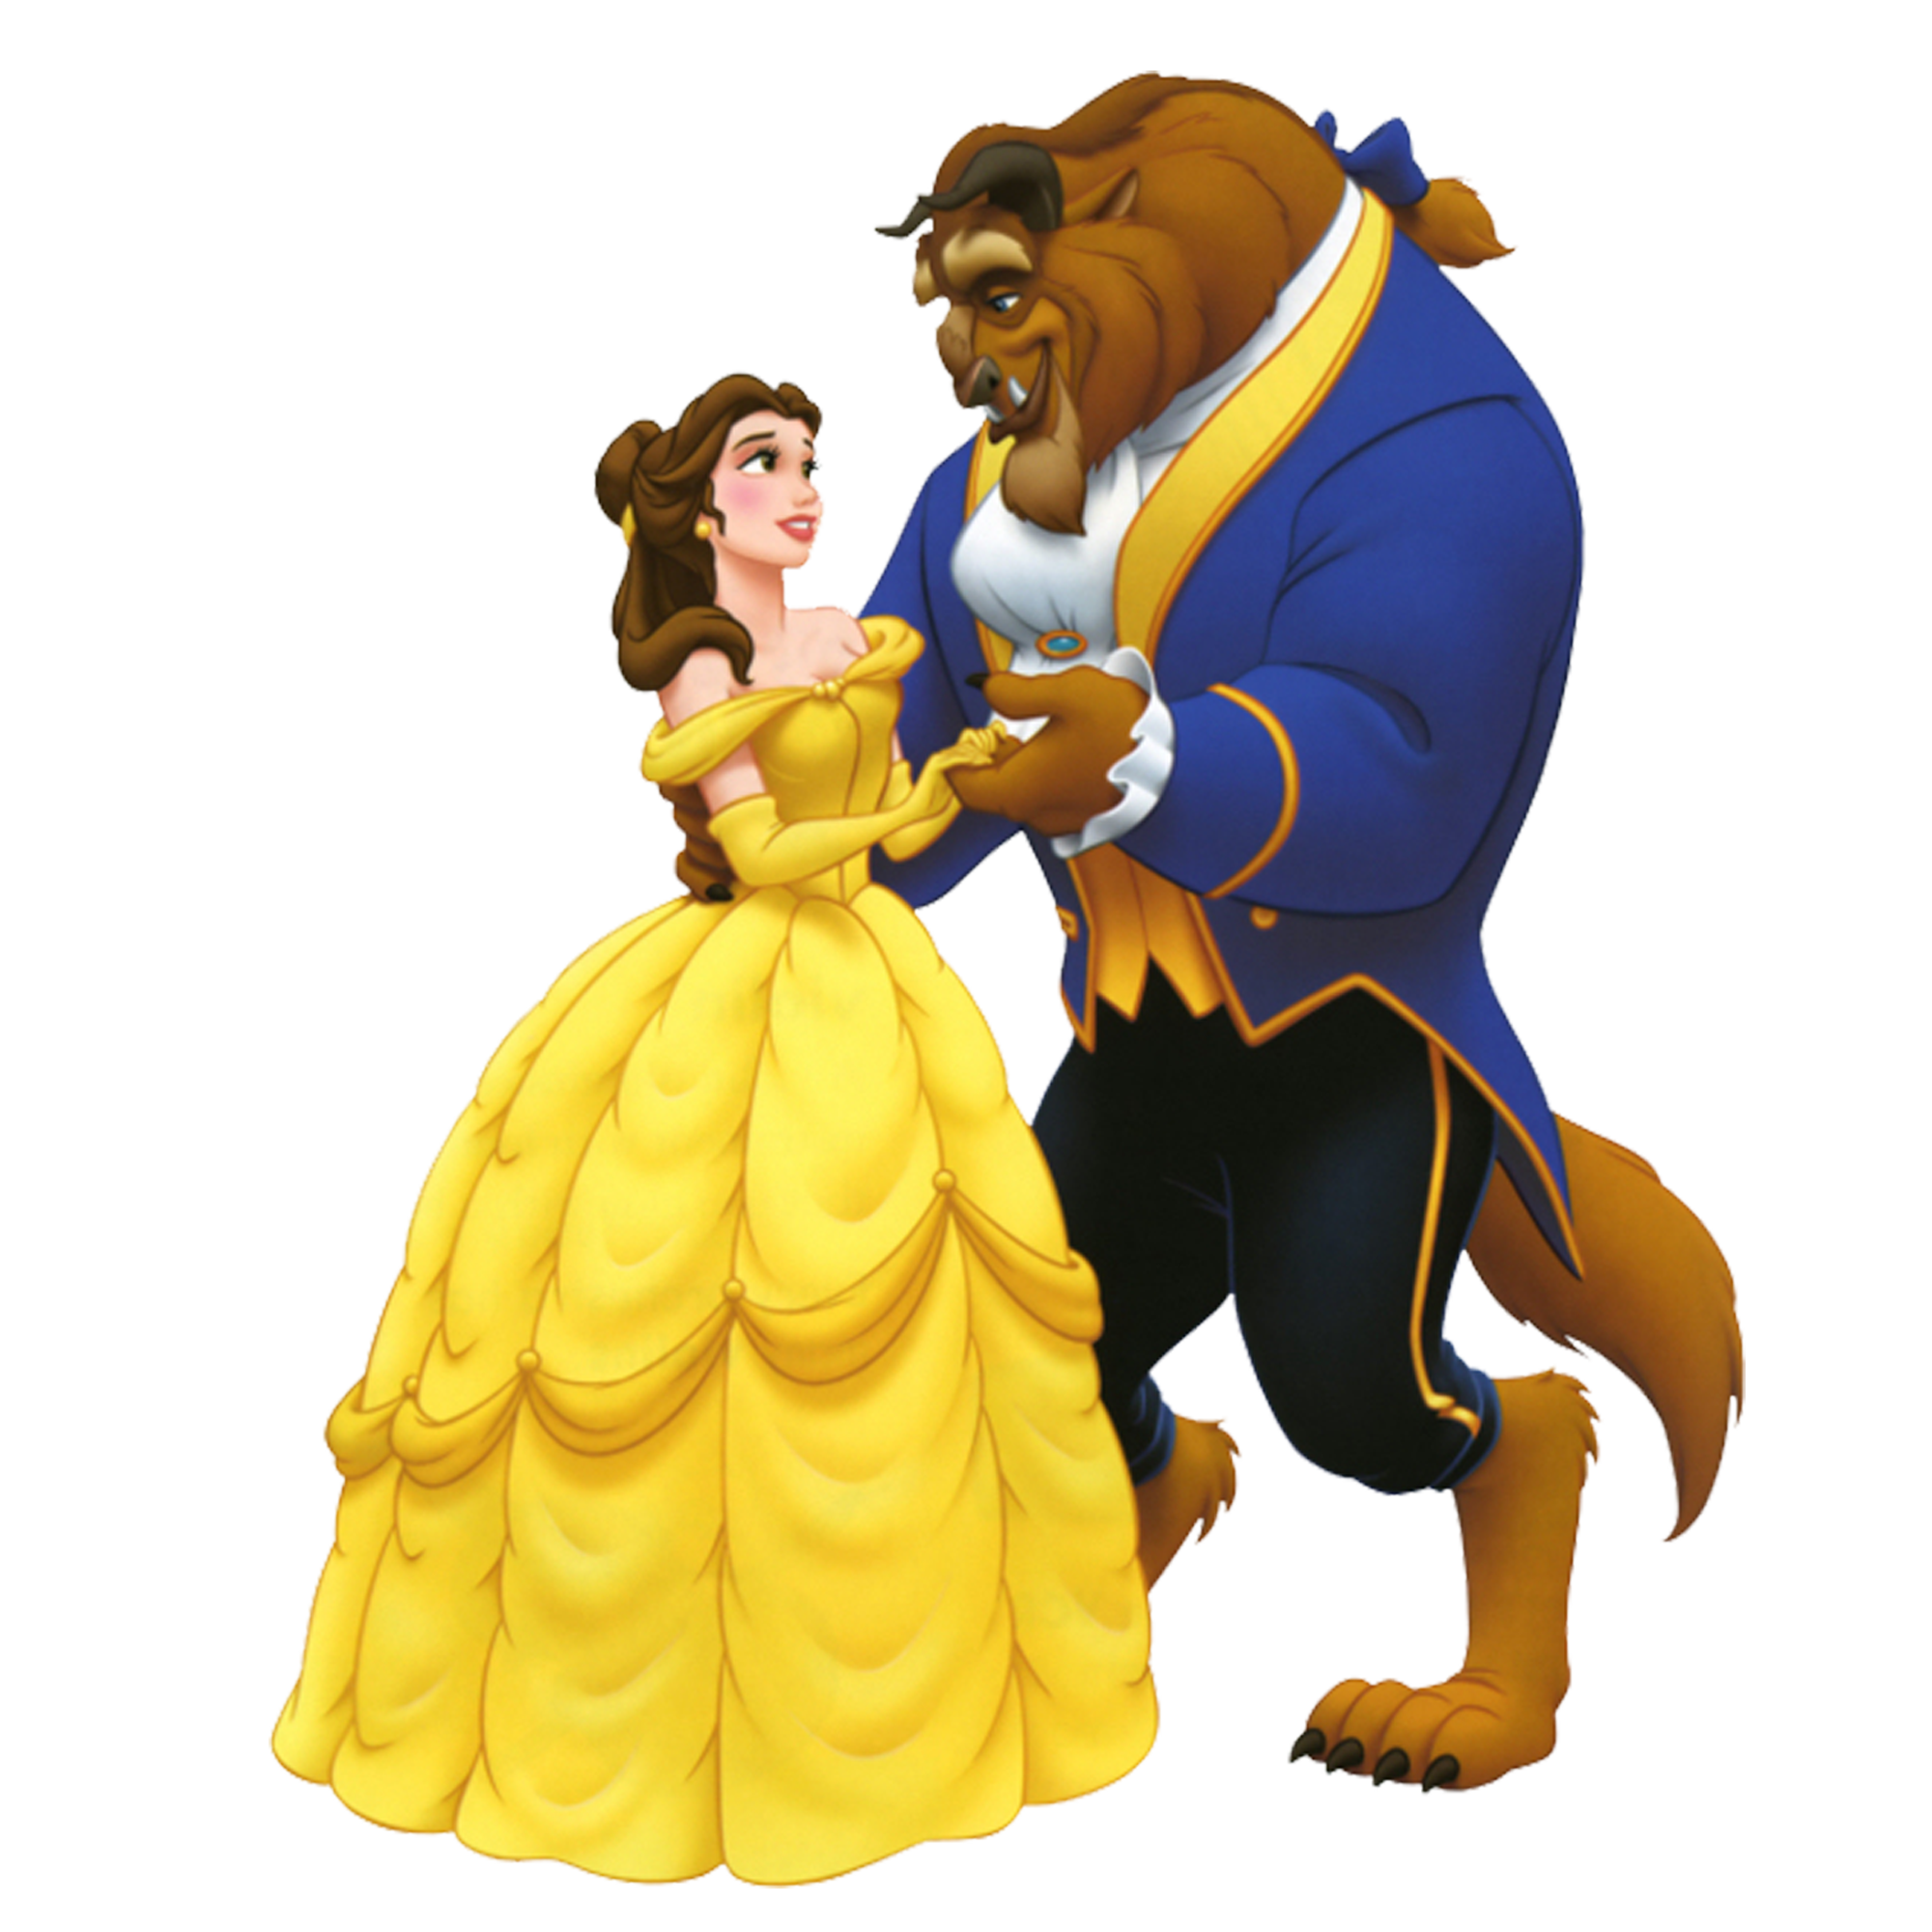 Disney couple png. Download beauty and the